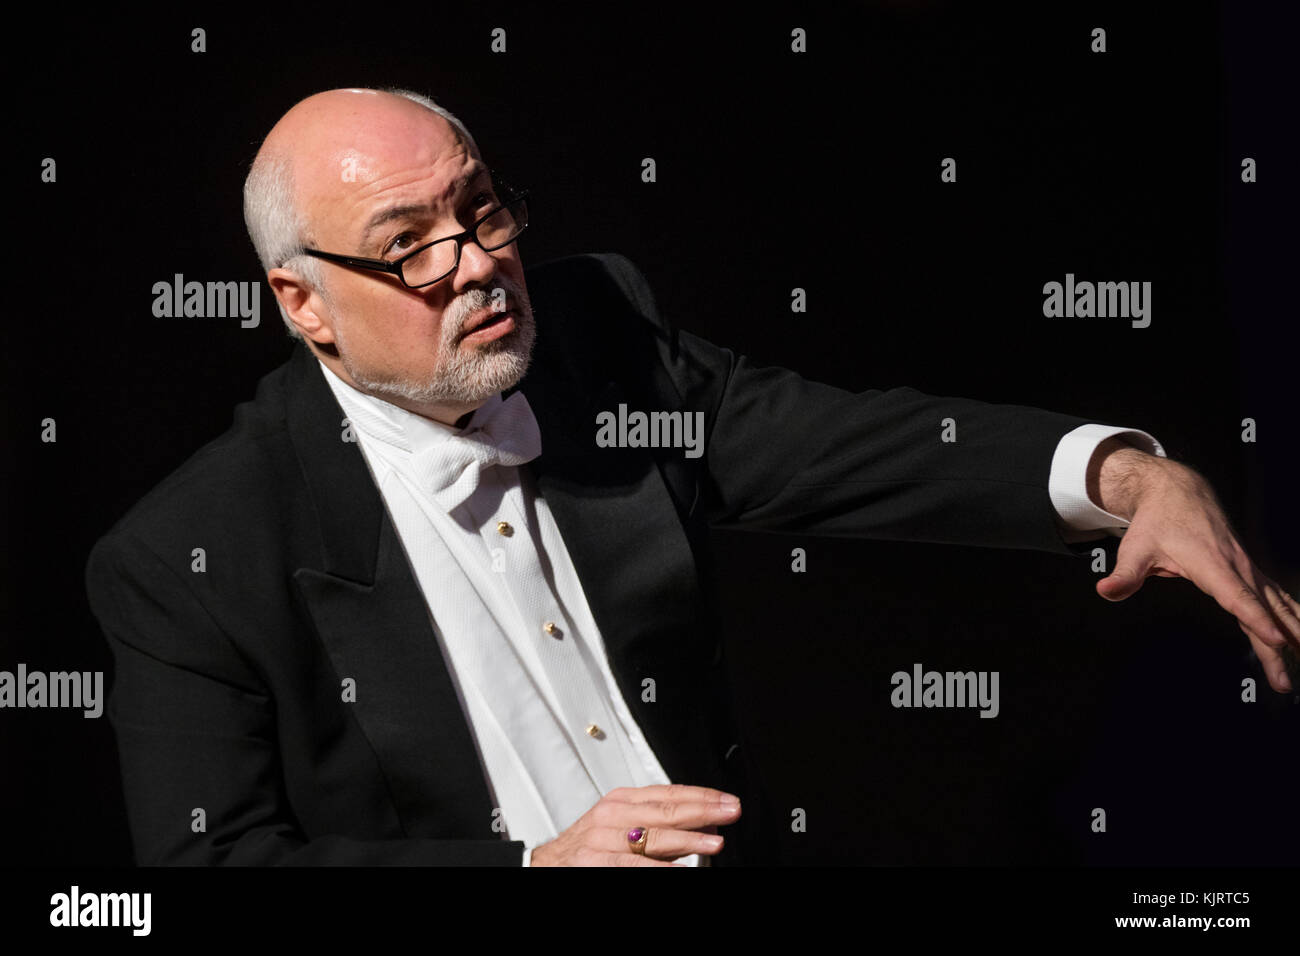 Conductor Constantine Orbelian on stage while conducting the orchestra - Stock Image